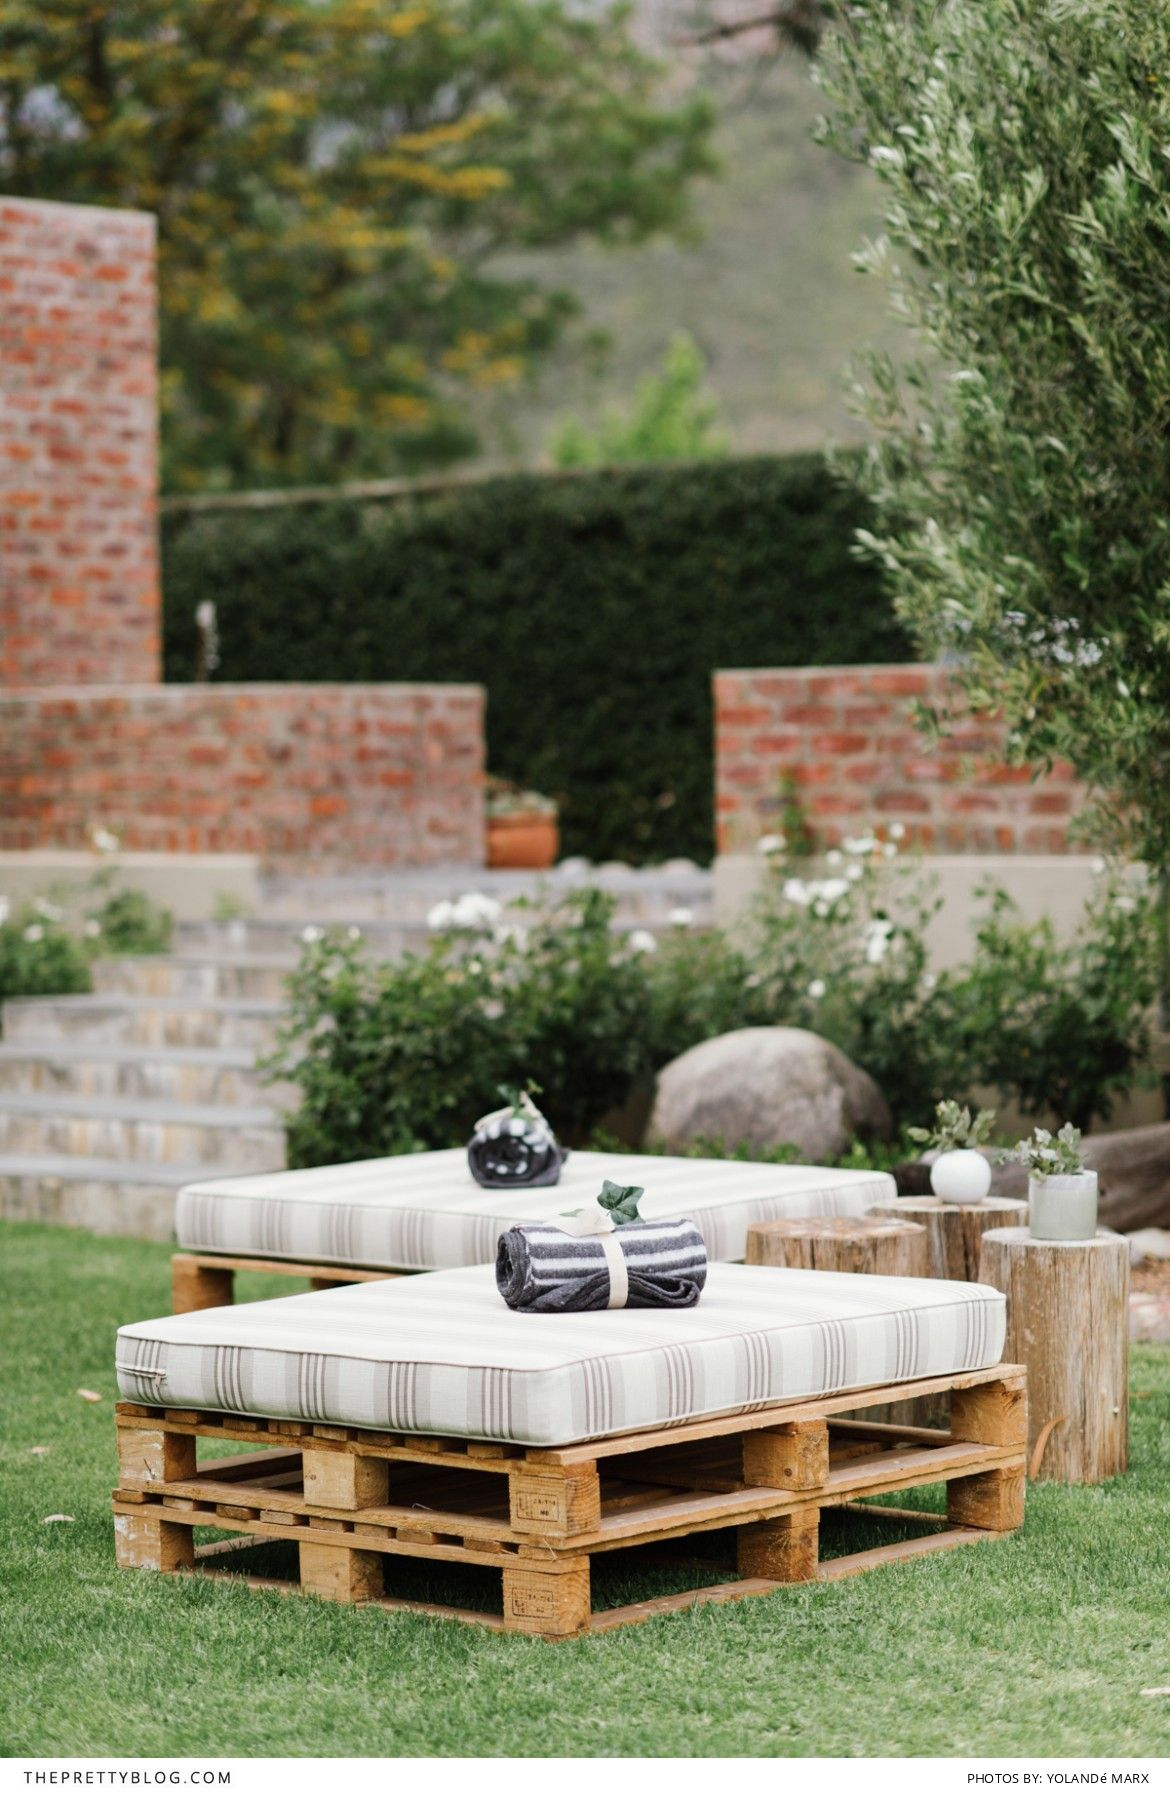 Outdoor Seating For Reception With A Rolled Up Blanket | Photography:  Yolandé Marx | Styling